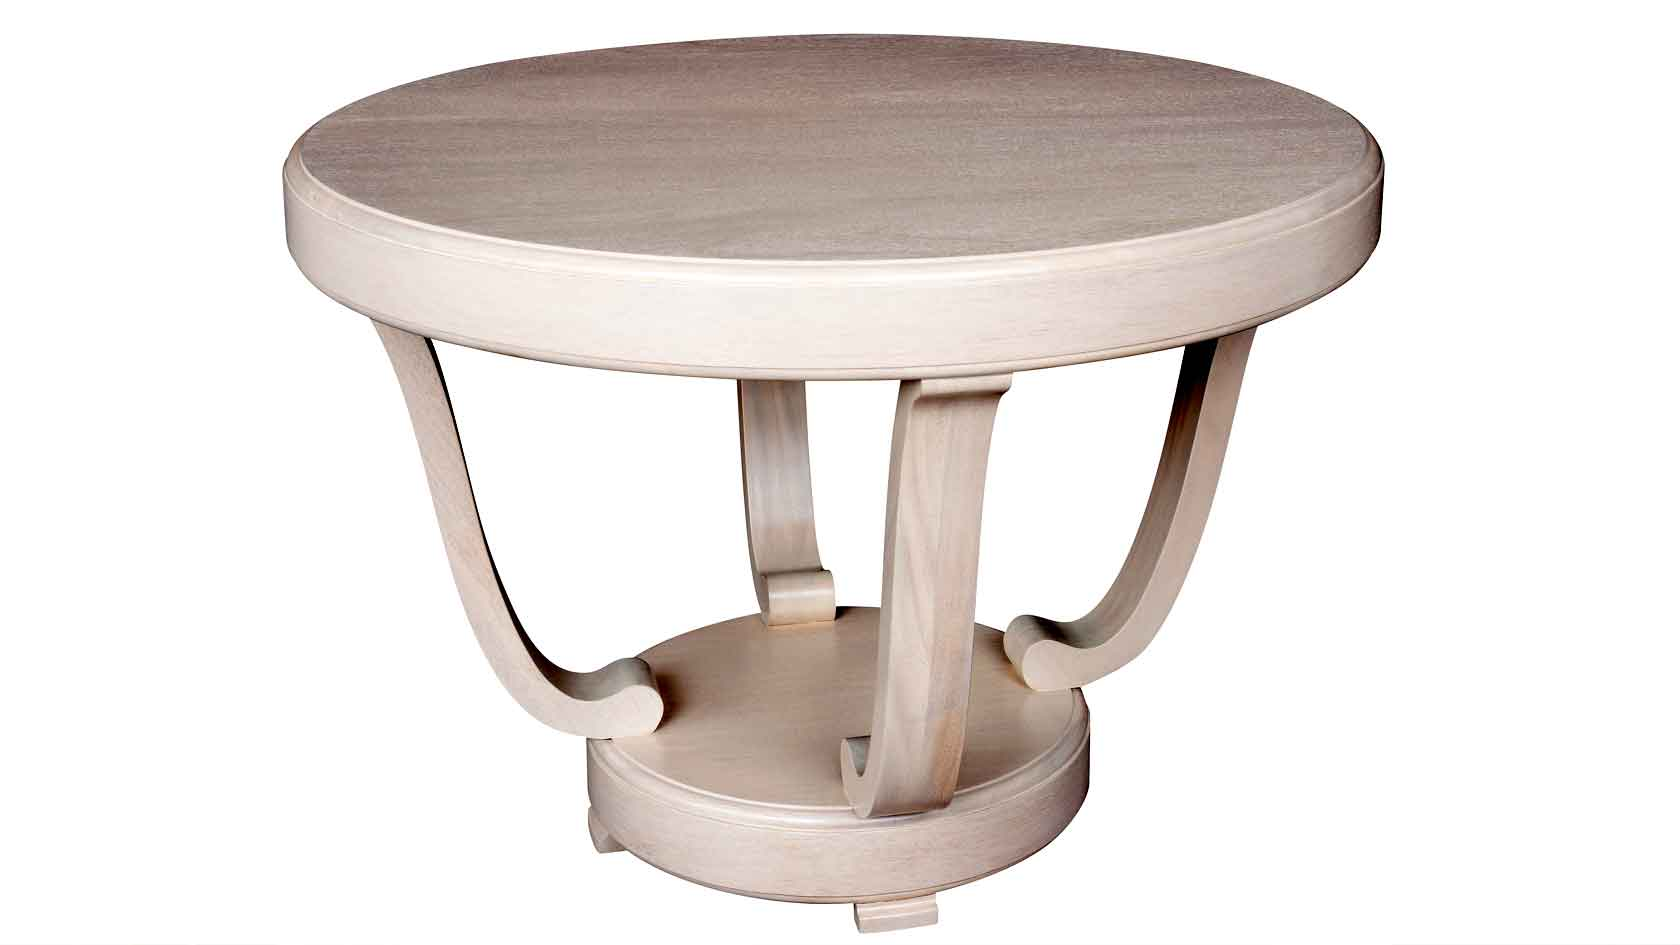 fiore center table w. four legs